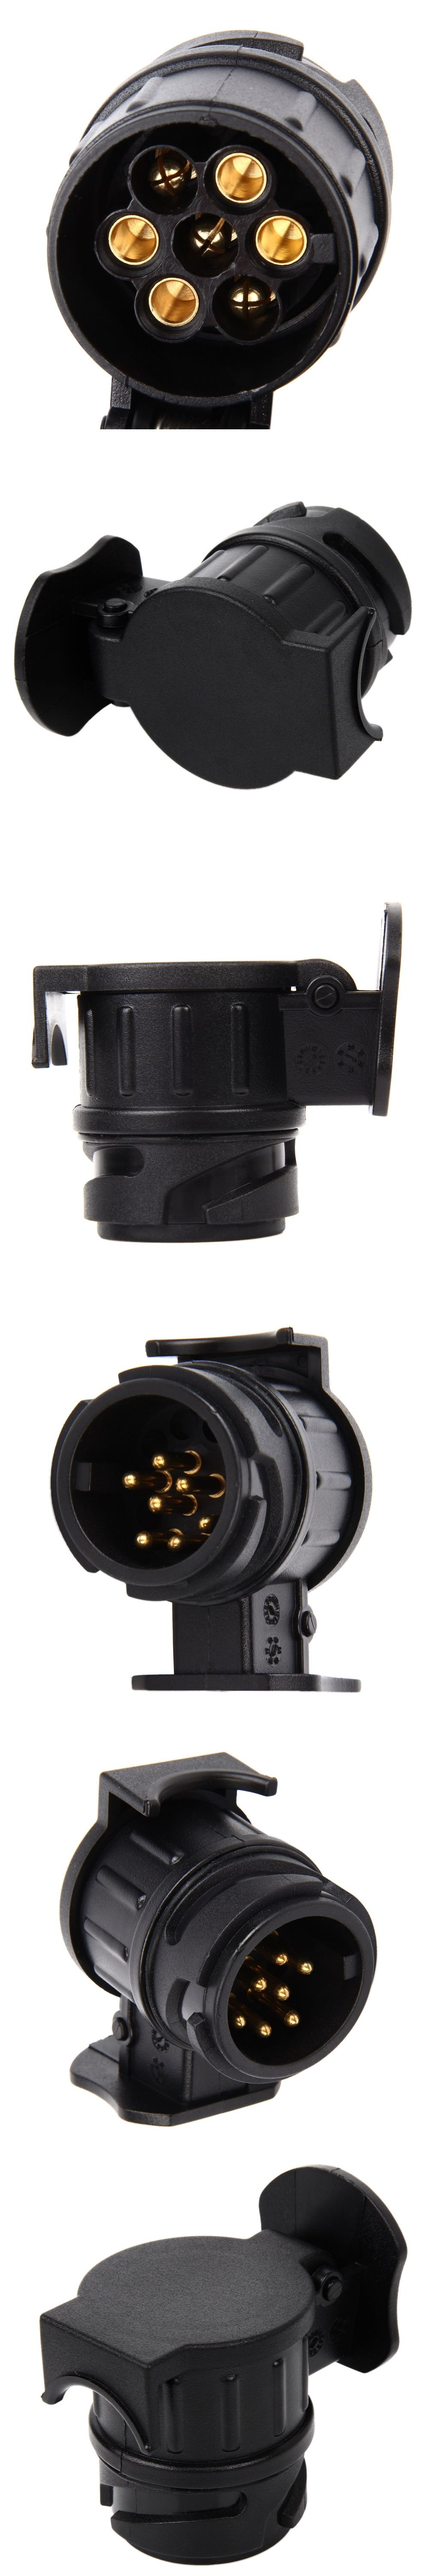 13 To 7 Pin 12v Trailer Adapter Frosted Materials Wiring Connector Fitting As On Most Caravans Trailers